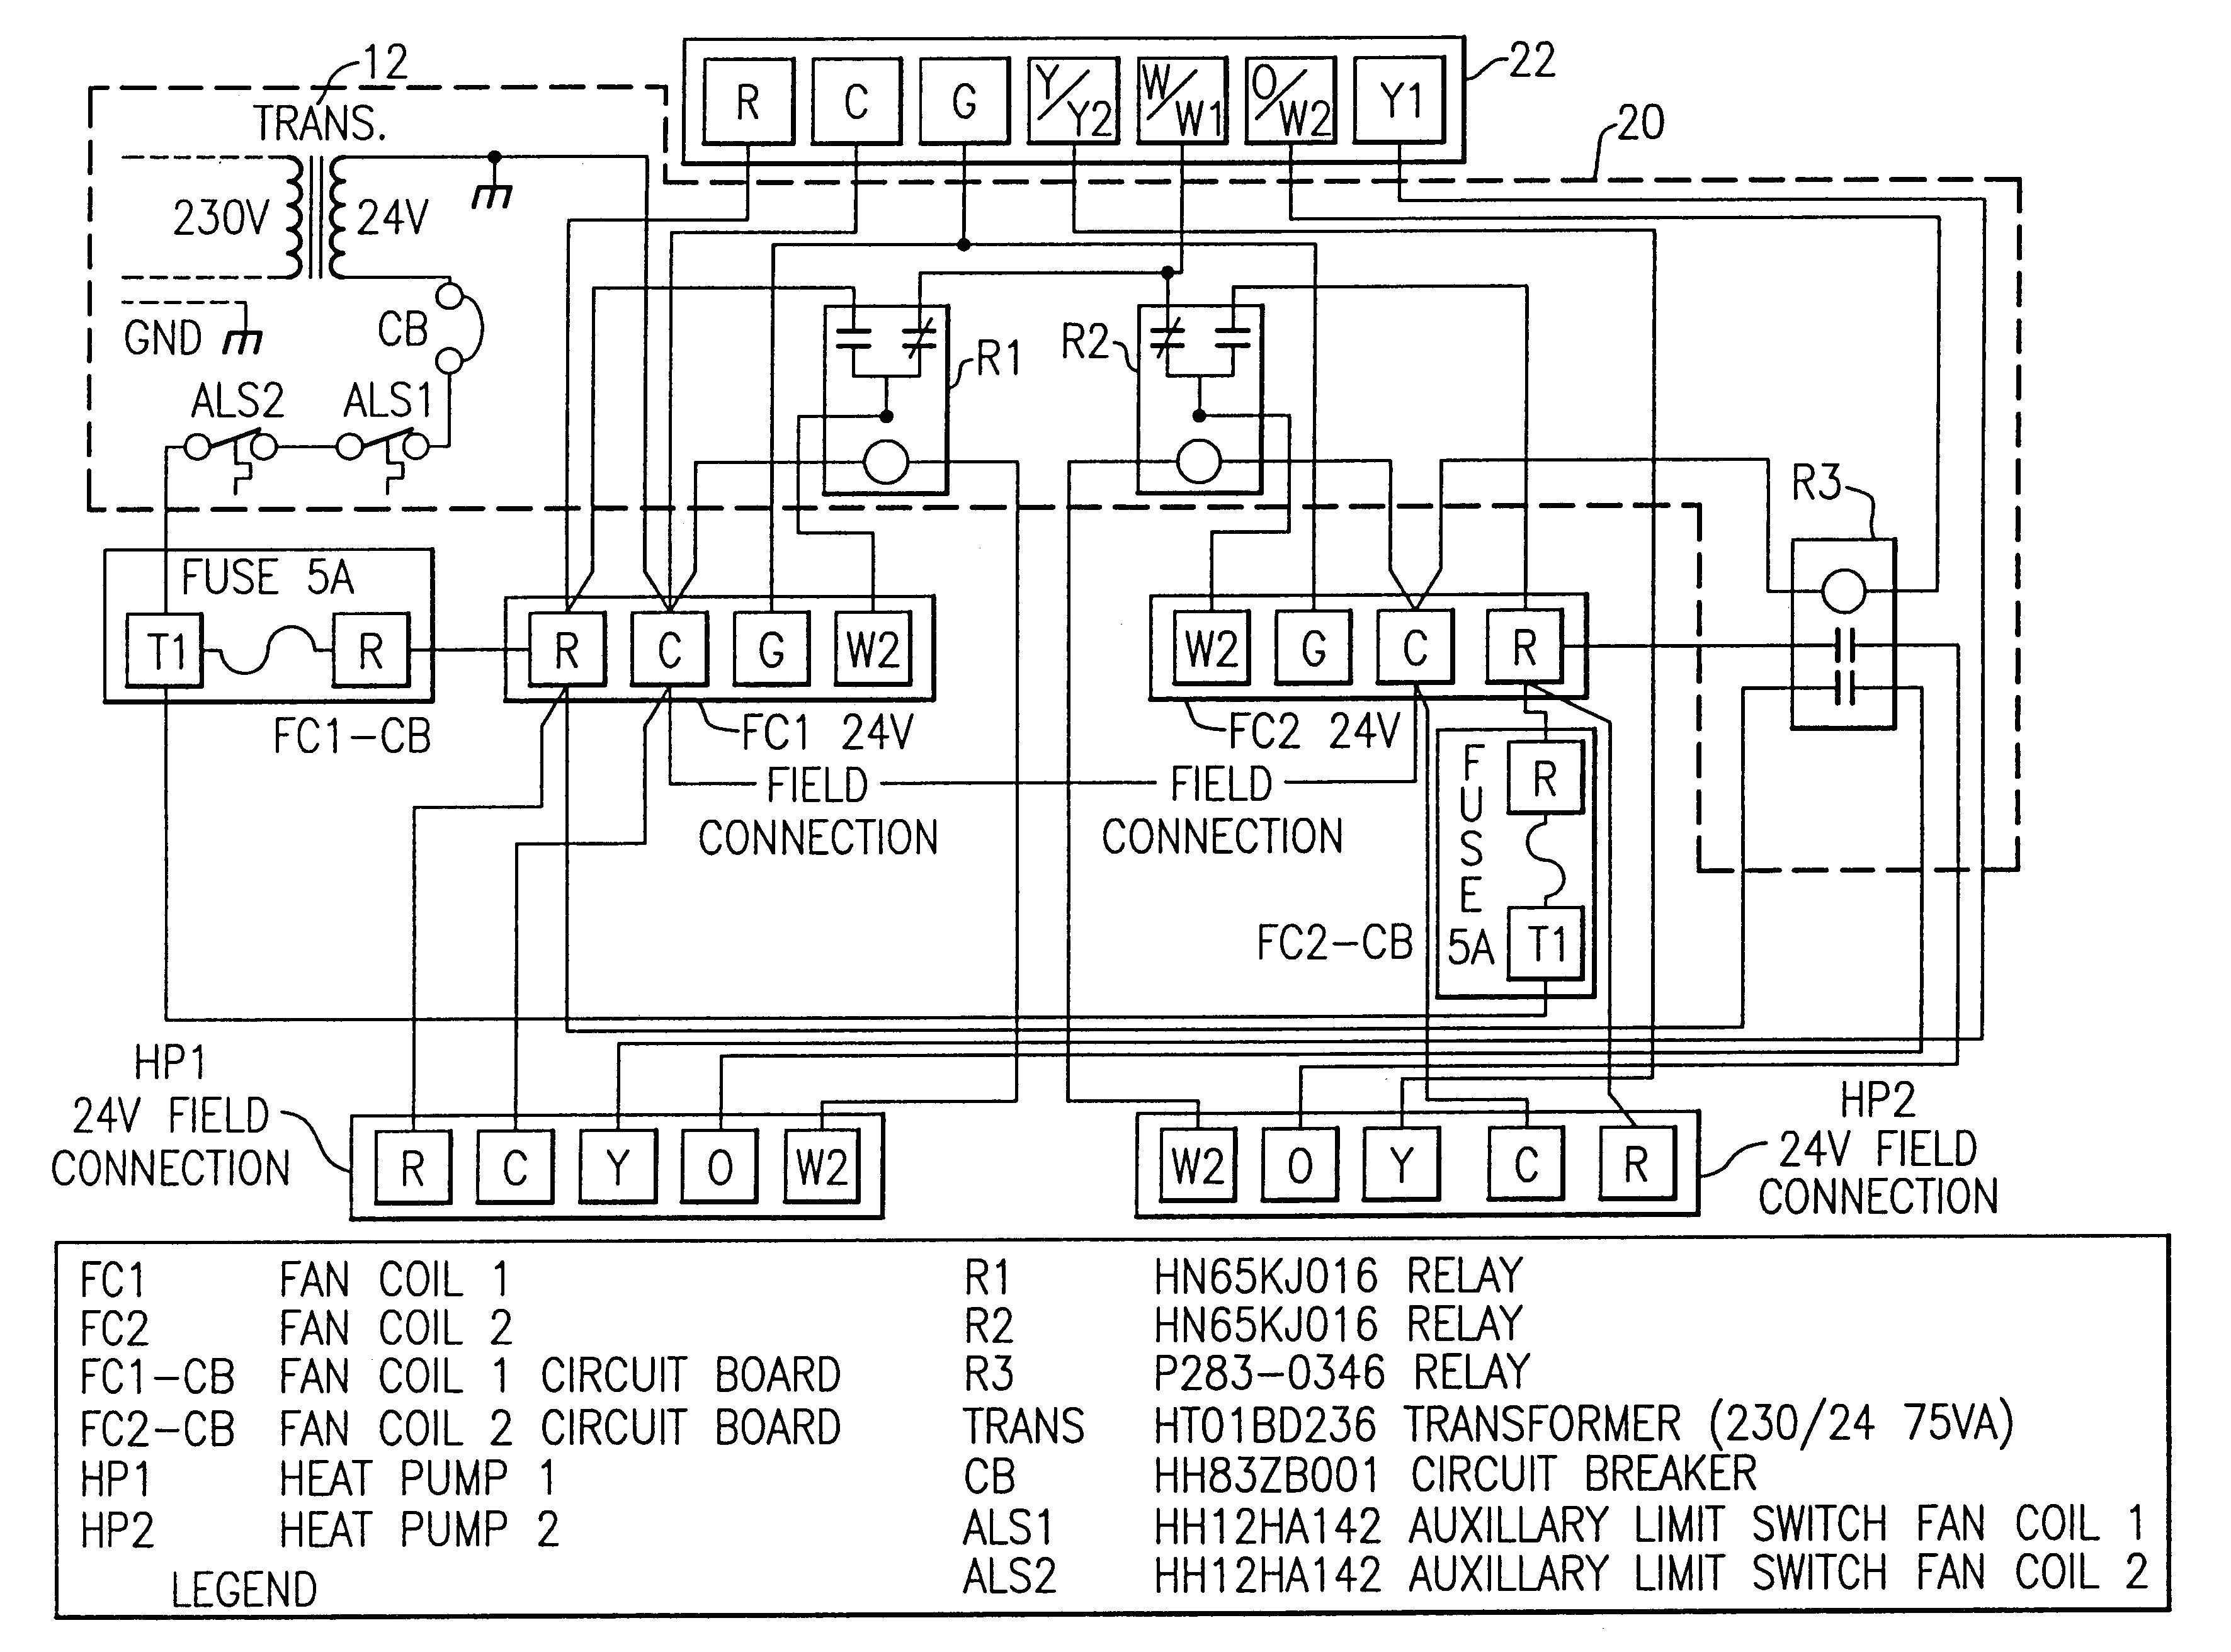 New Contactor Coil Wiring Diagram #diagramsample #